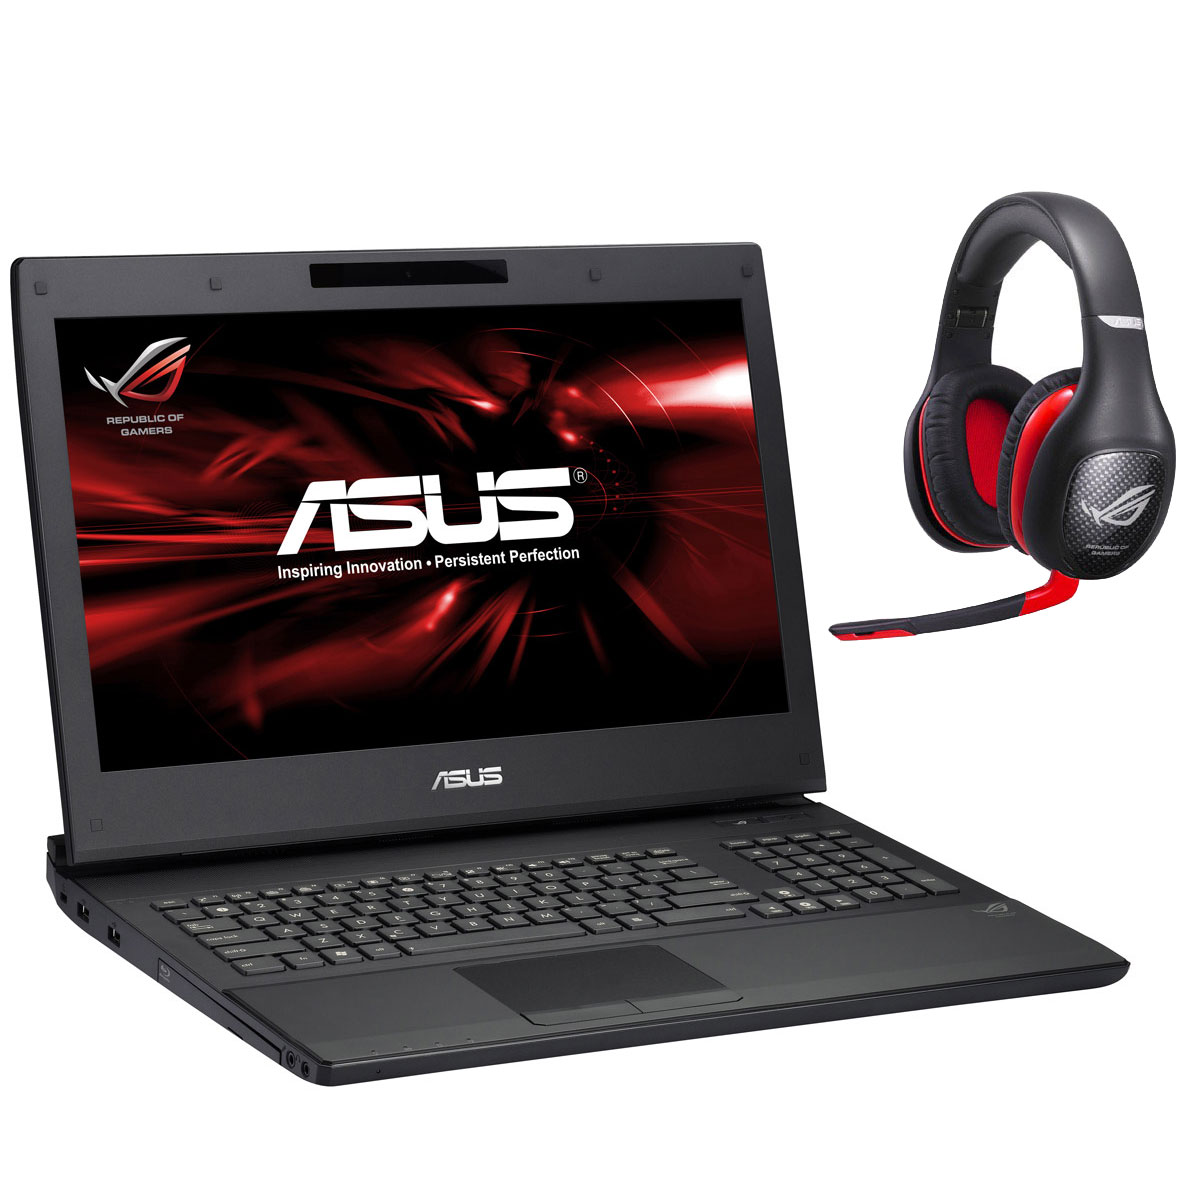 "PC portable ASUS G74SX-TZ378V + ASUS Vulcan ANC Intel Core i7-2670QM 8 Go 750 Go + SSD 256 Go 17.3"" LED NVIDIA GeForce GTX 560M Graveur DVD Wi-Fi N/BT Webcam Windows 7 Premium 64 bits (garantie constructeur 2 ans)"